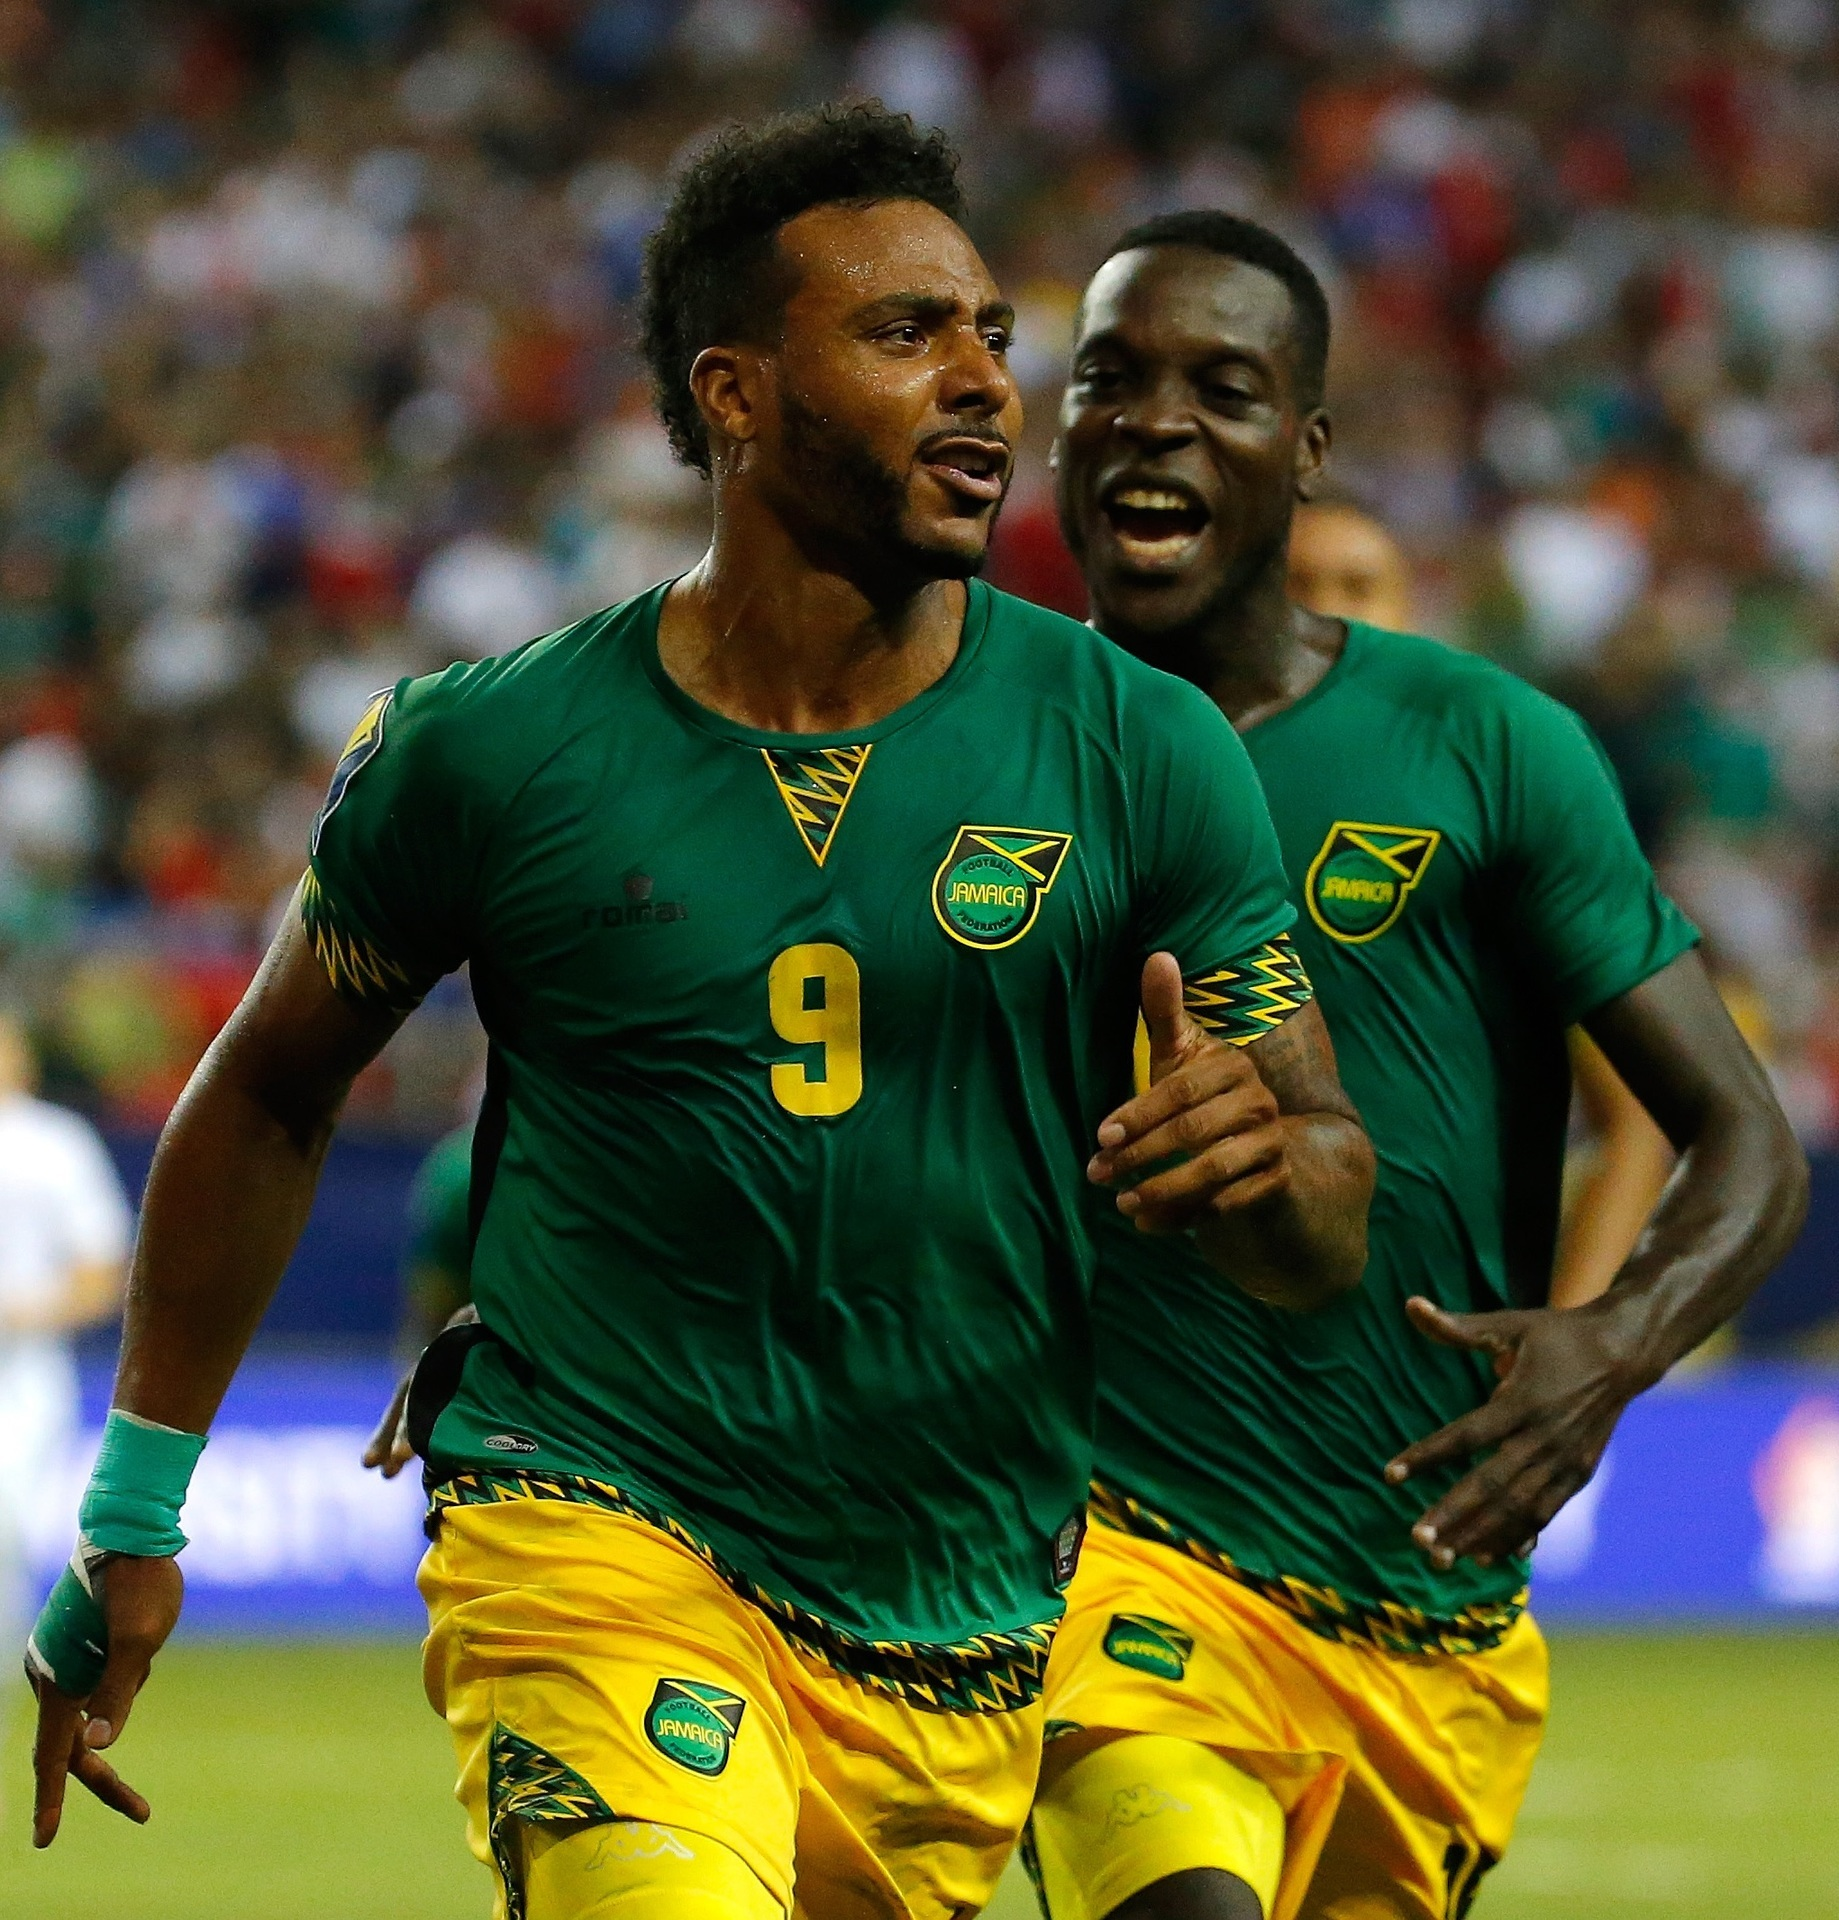 Jamaica-2015-romai-gold-cup-away-kit-green-yellow-green.jpg